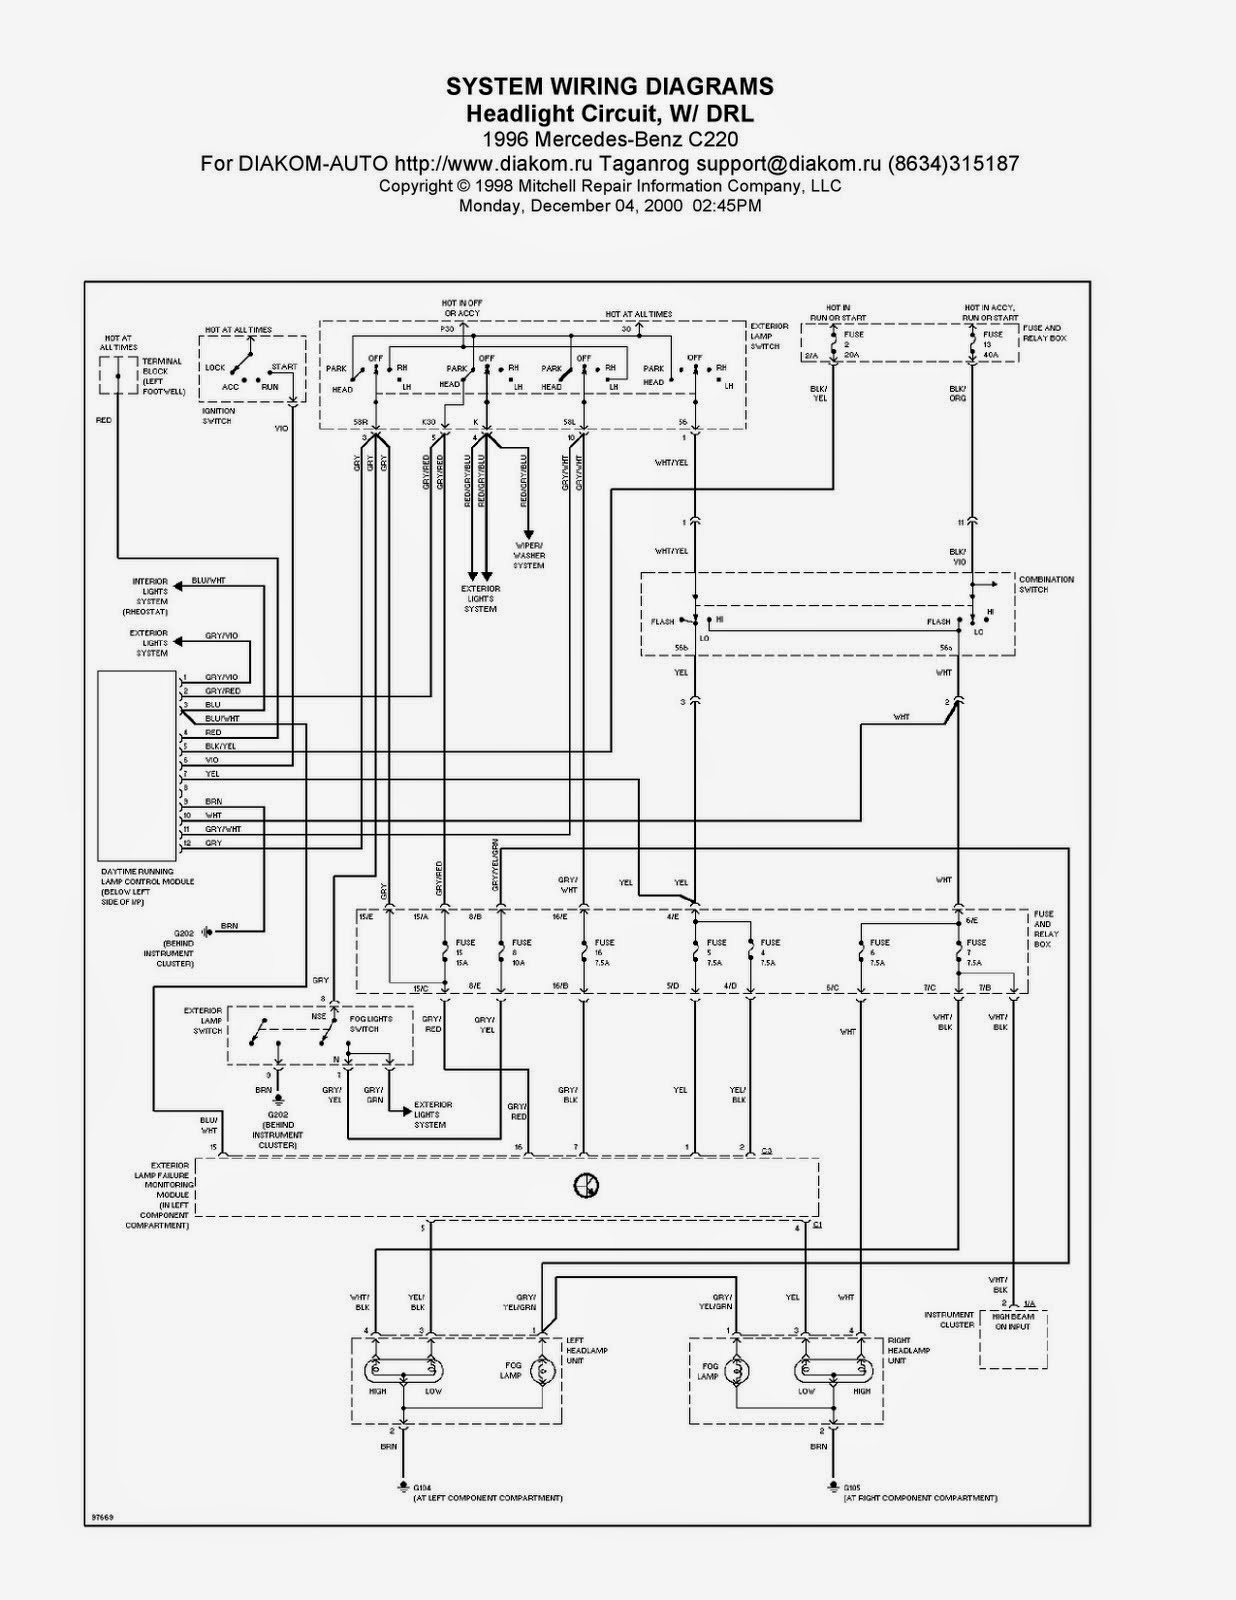 Wiring Diagram For 110 Ml Chinese Atv 110 Cc ATV